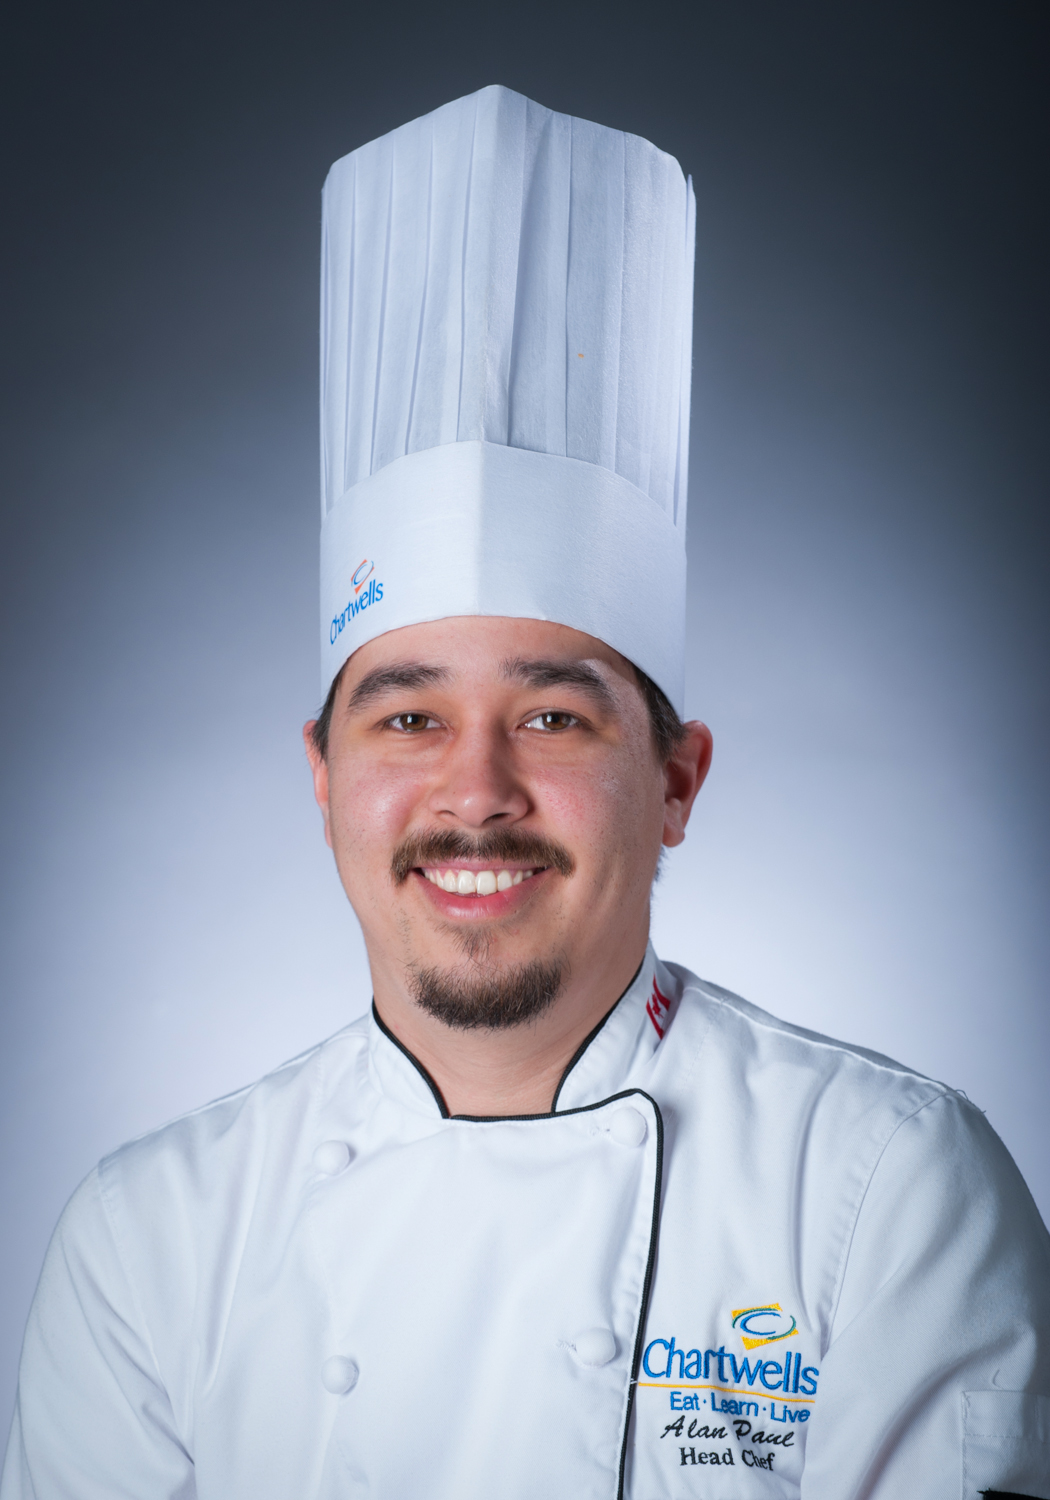 Alan Paul - Executive Chef